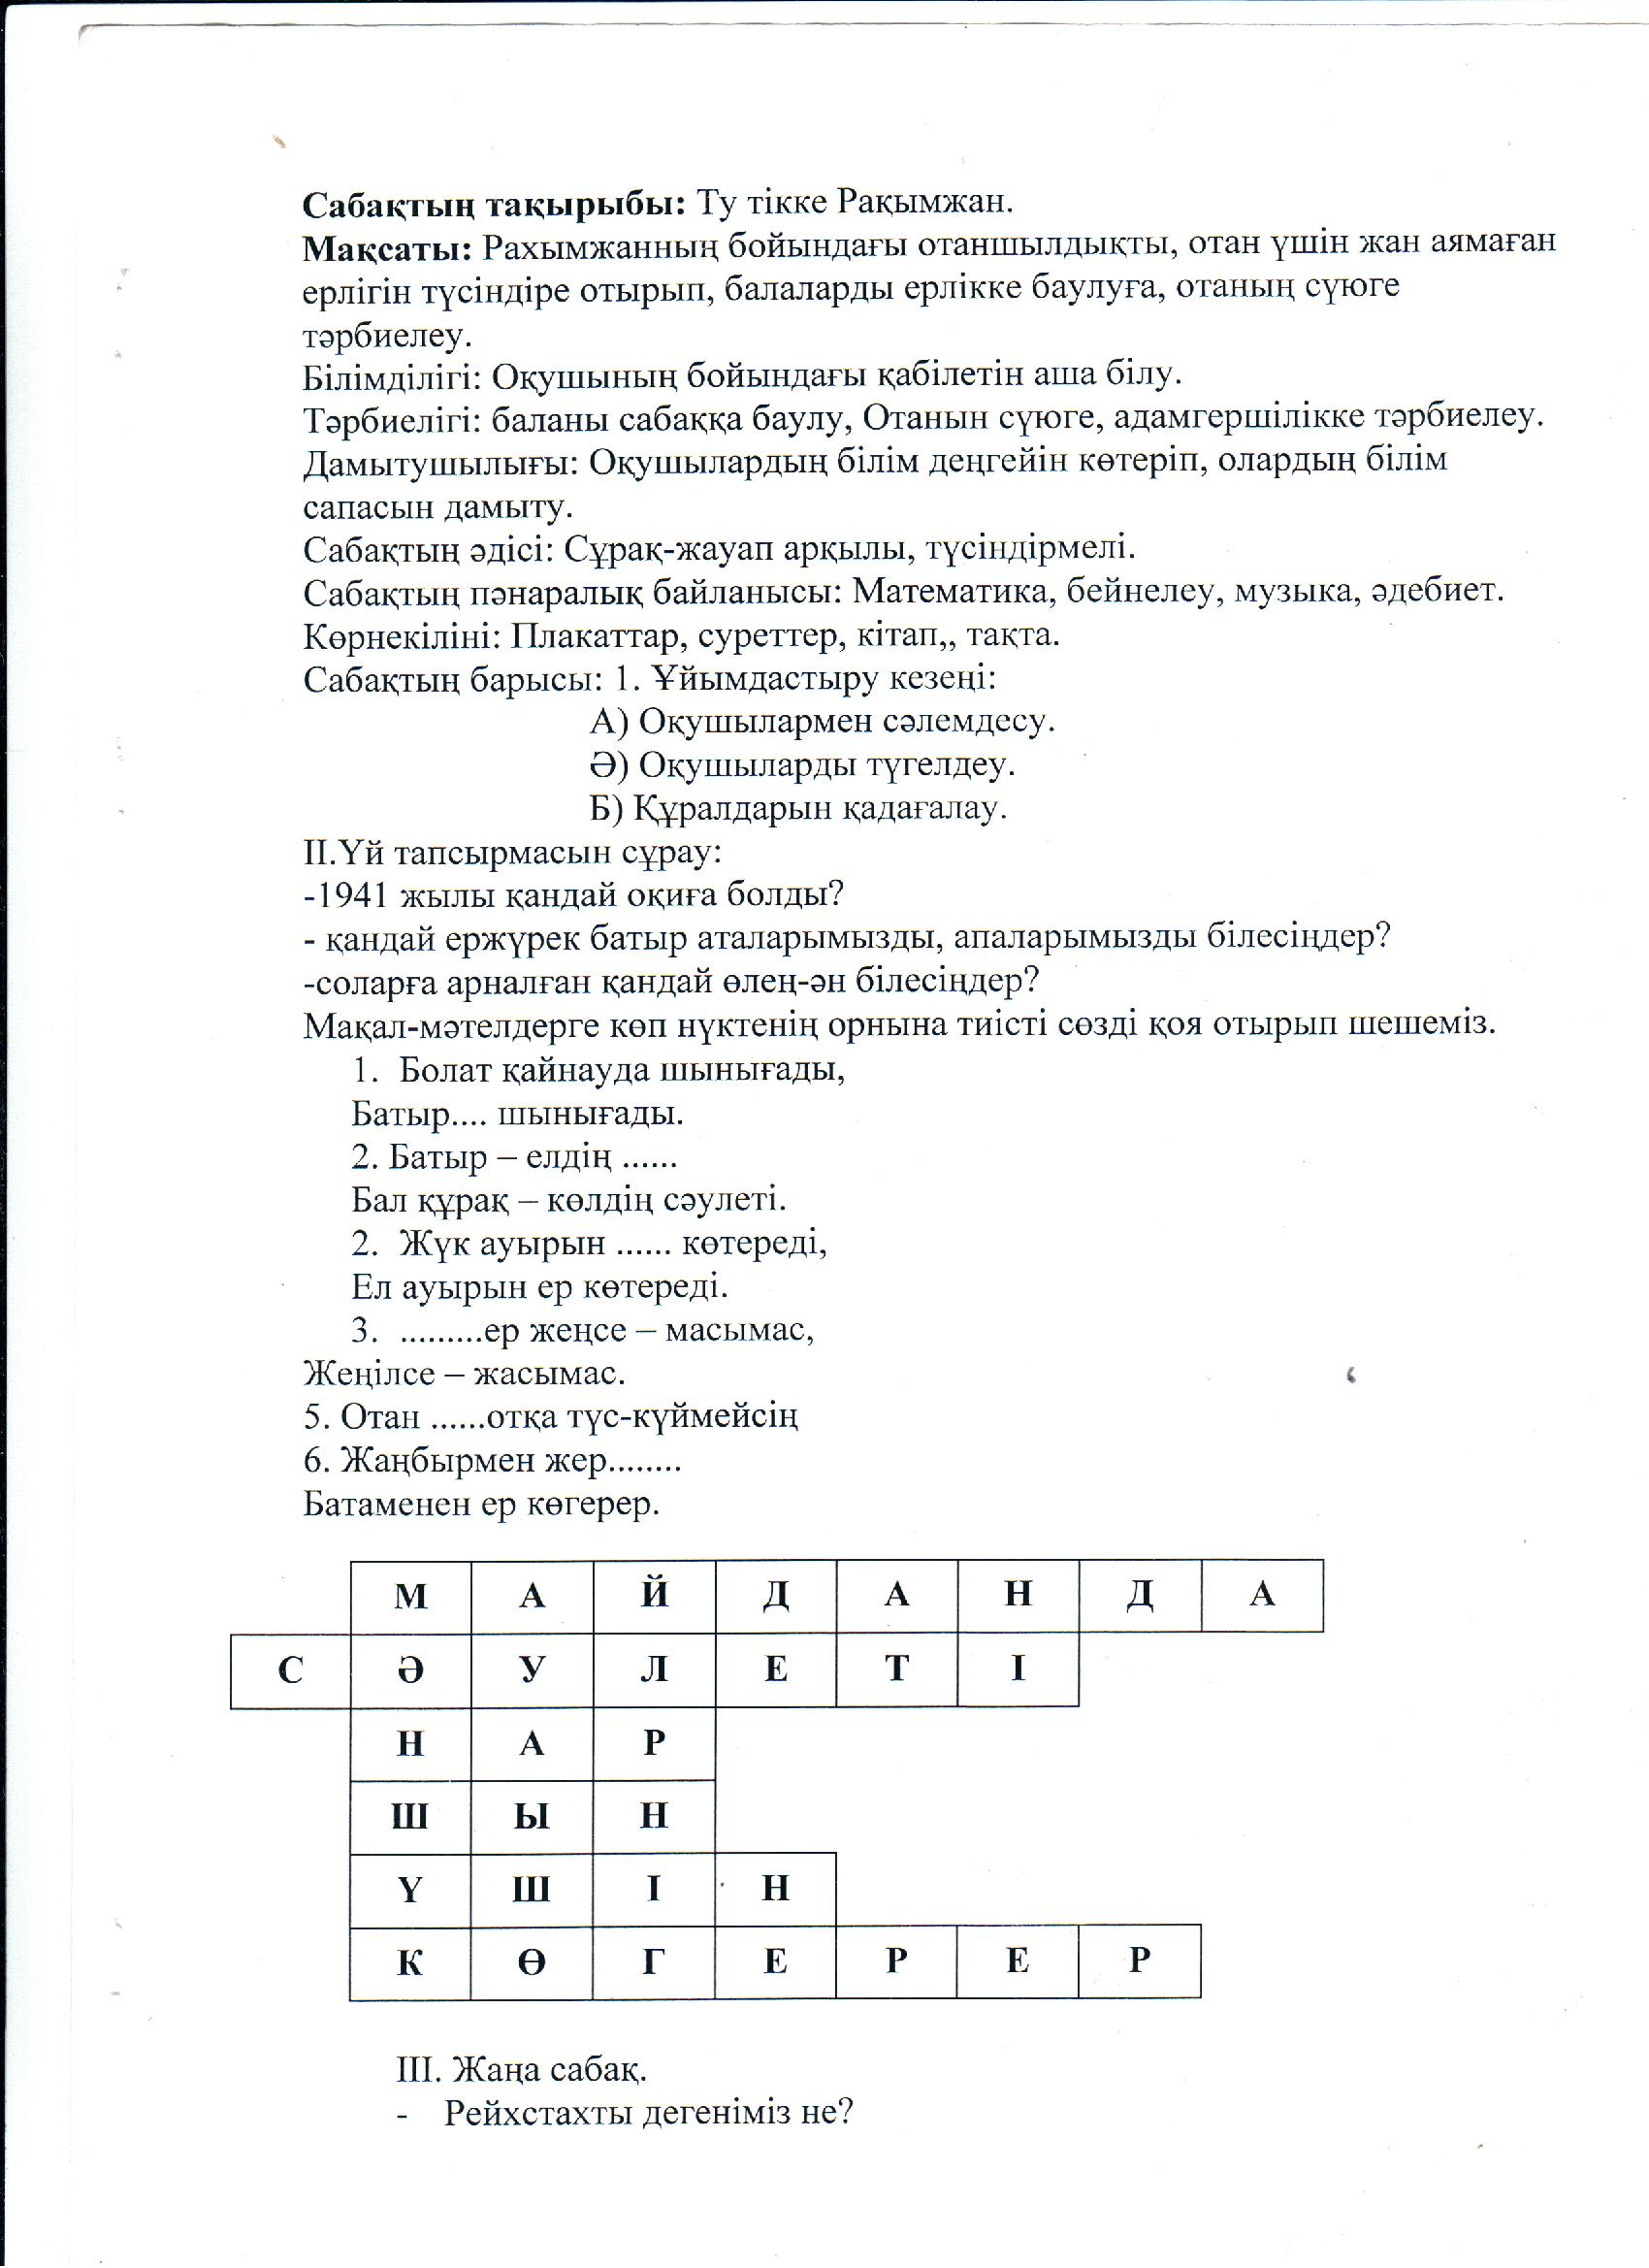 C:\Users\галамат\Documents\Scanned Documents\Documents\гул.jpeg